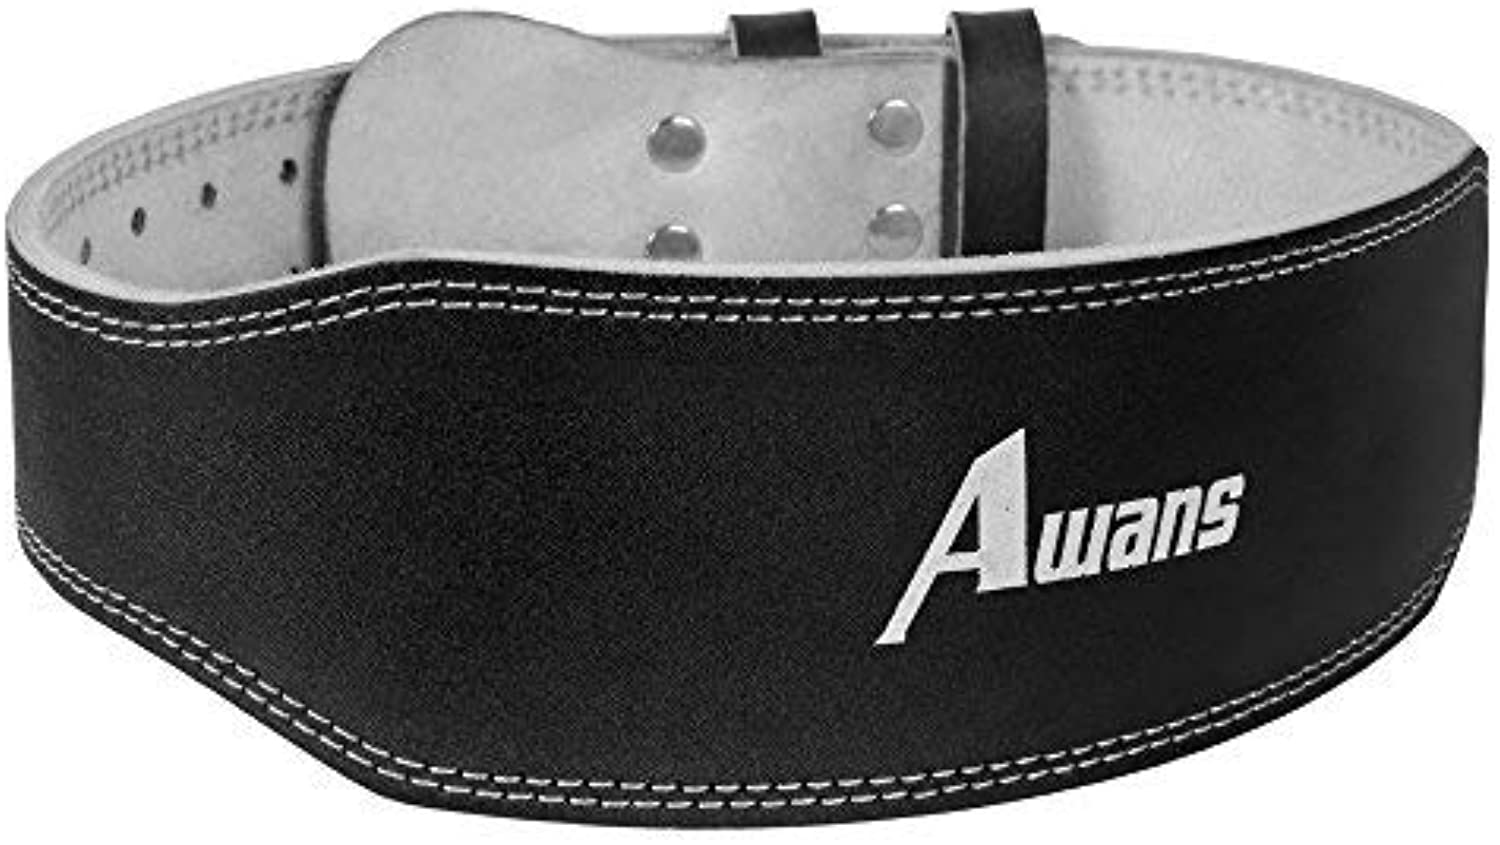 Genuine Leather Weight Lifting Belt for Men and Women   Durable Comfortable & Adjustable with Buckle   Stabilizing Lower Back Support for Weightlifting (X Large   4149 (Waist Size not Pant Size))